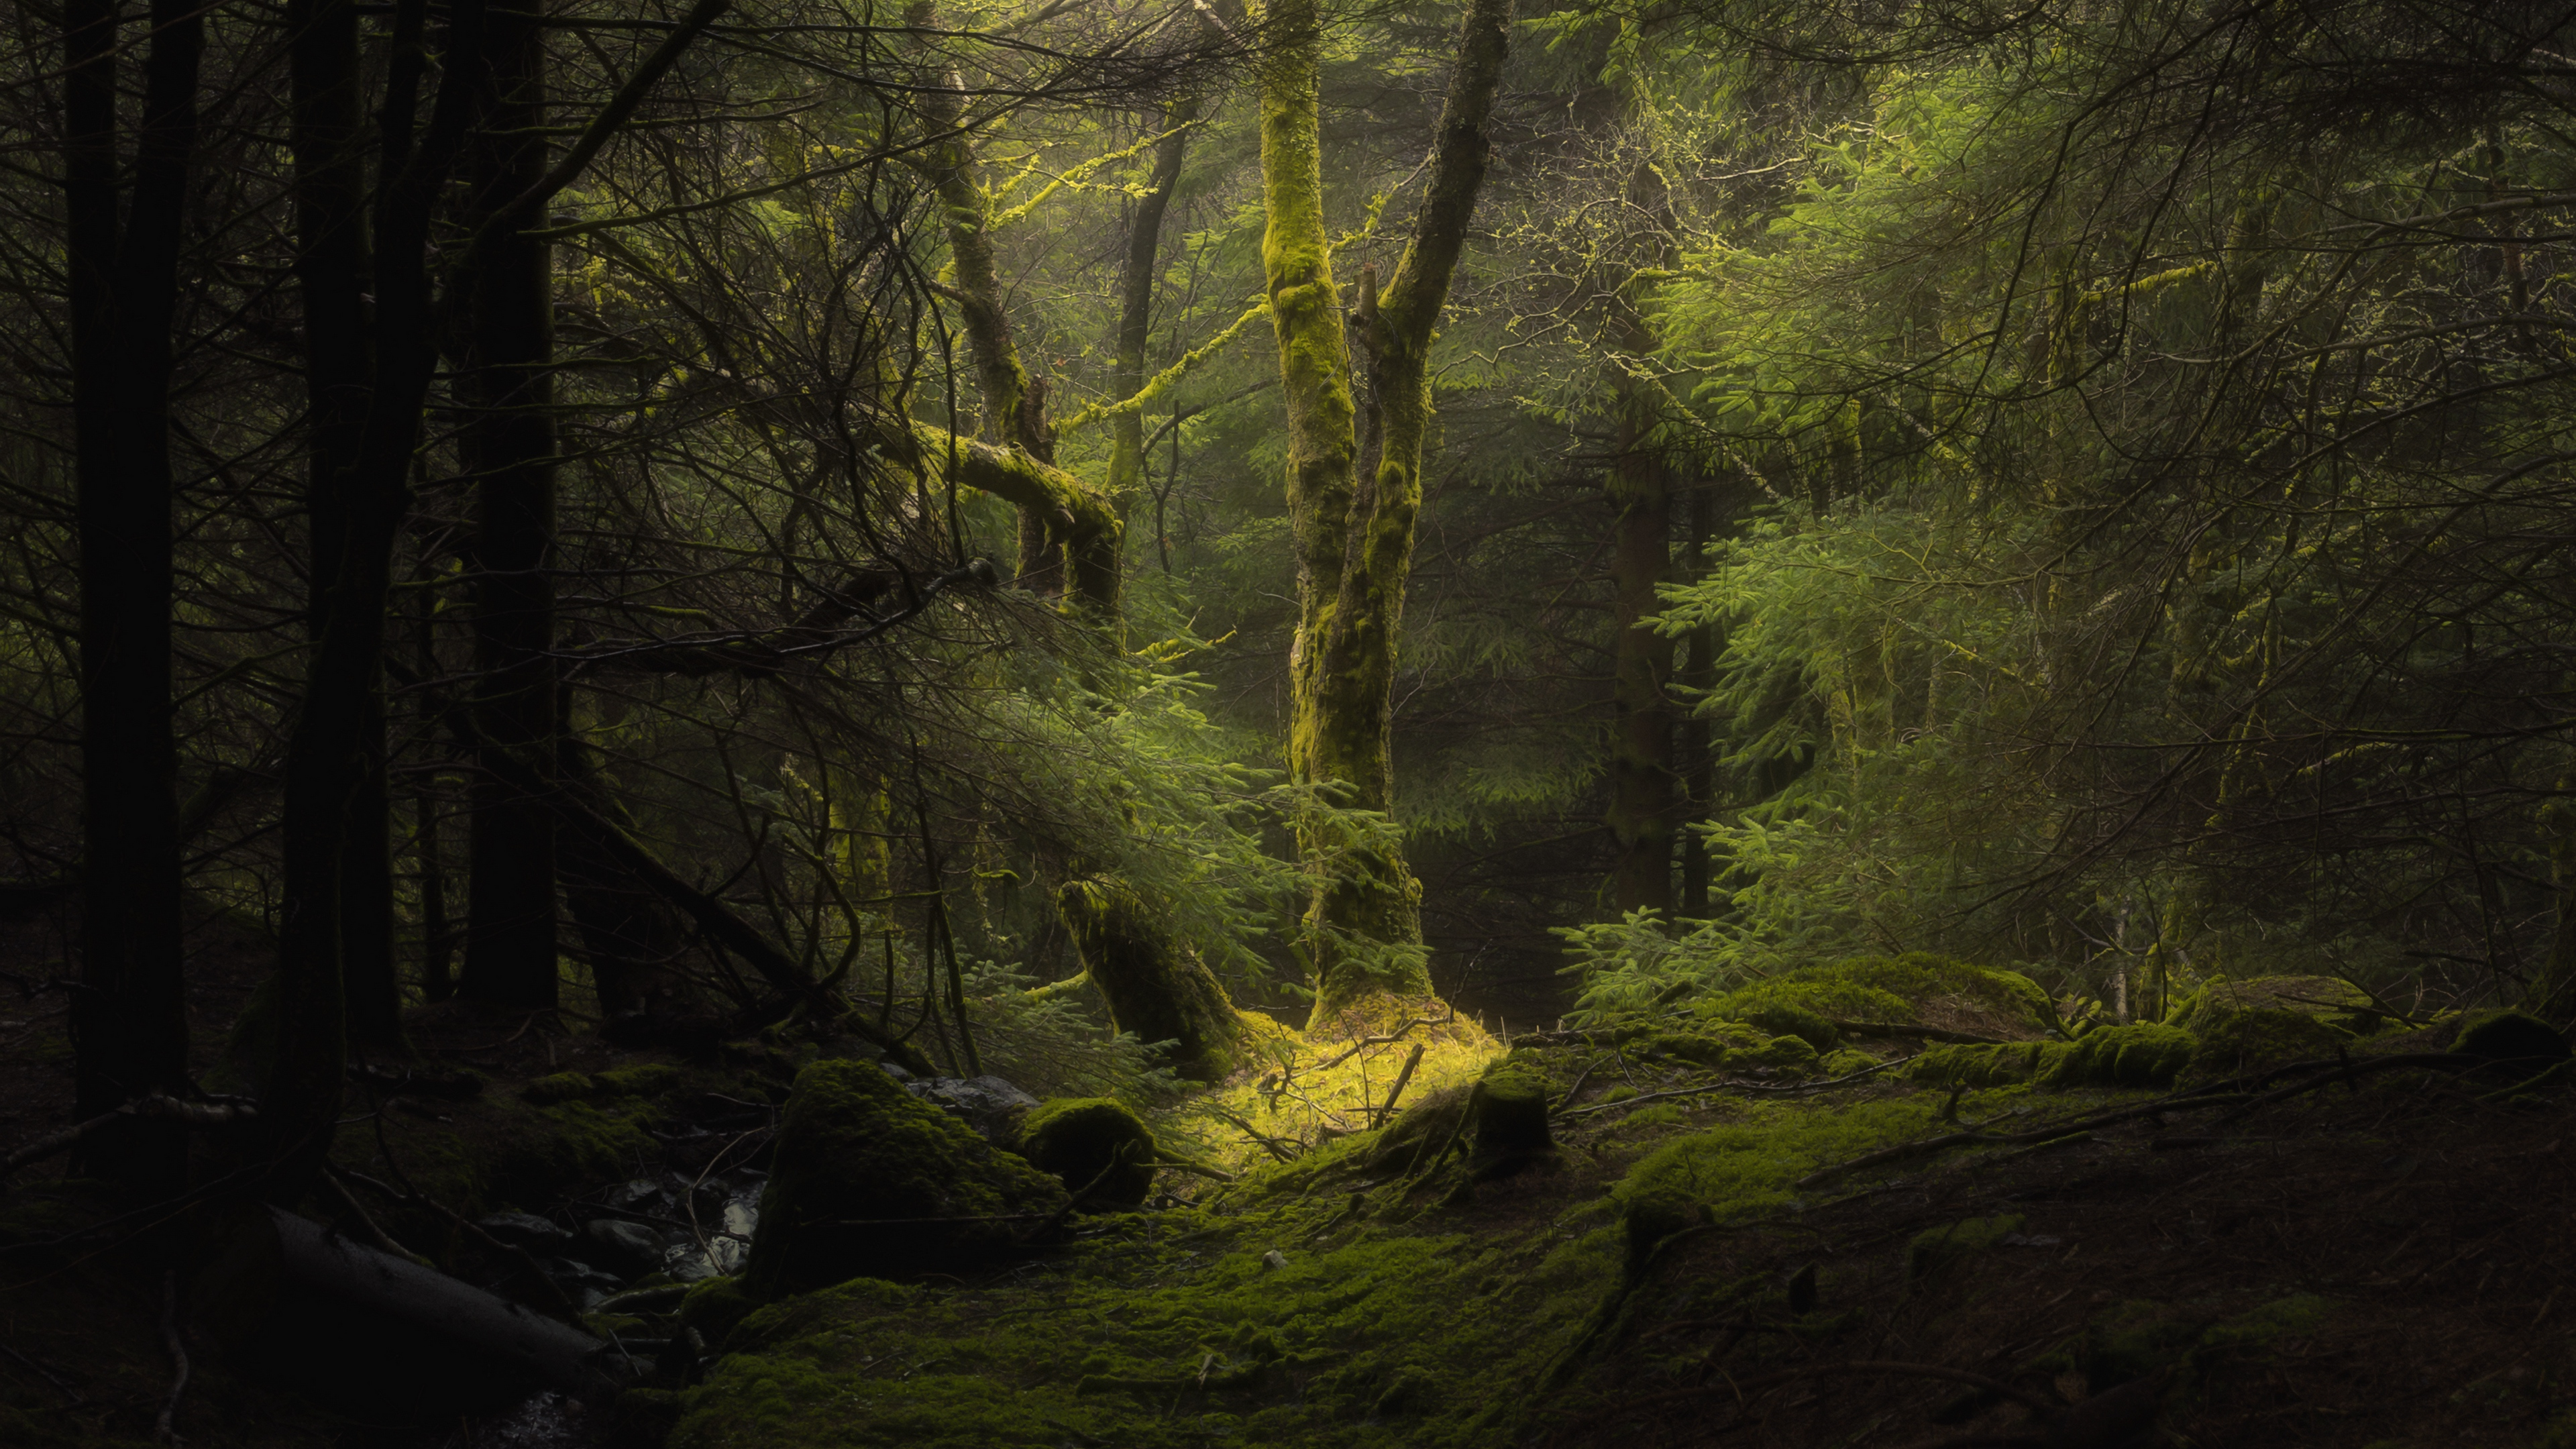 General 3840x2160 nature trees plants dark forest moss deep forest